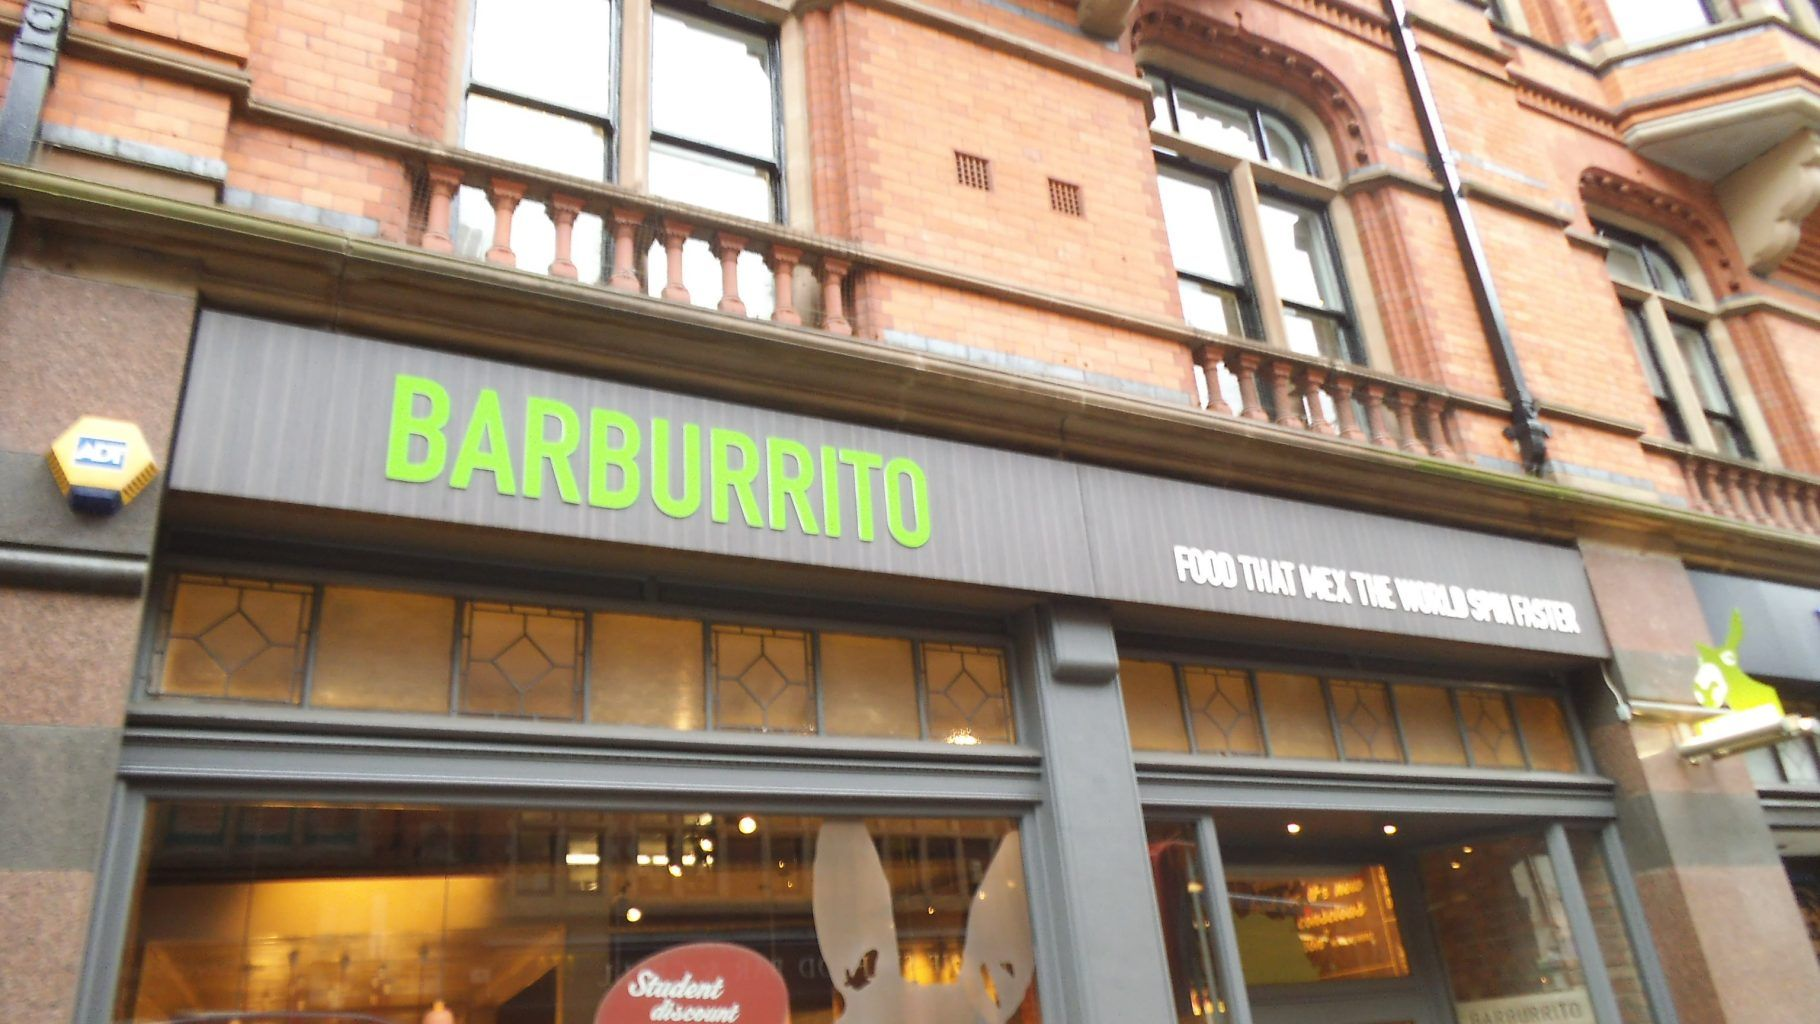 BARBURRITO Fret cut composite tray sign with a di-noc wrap and push through acrylic letters